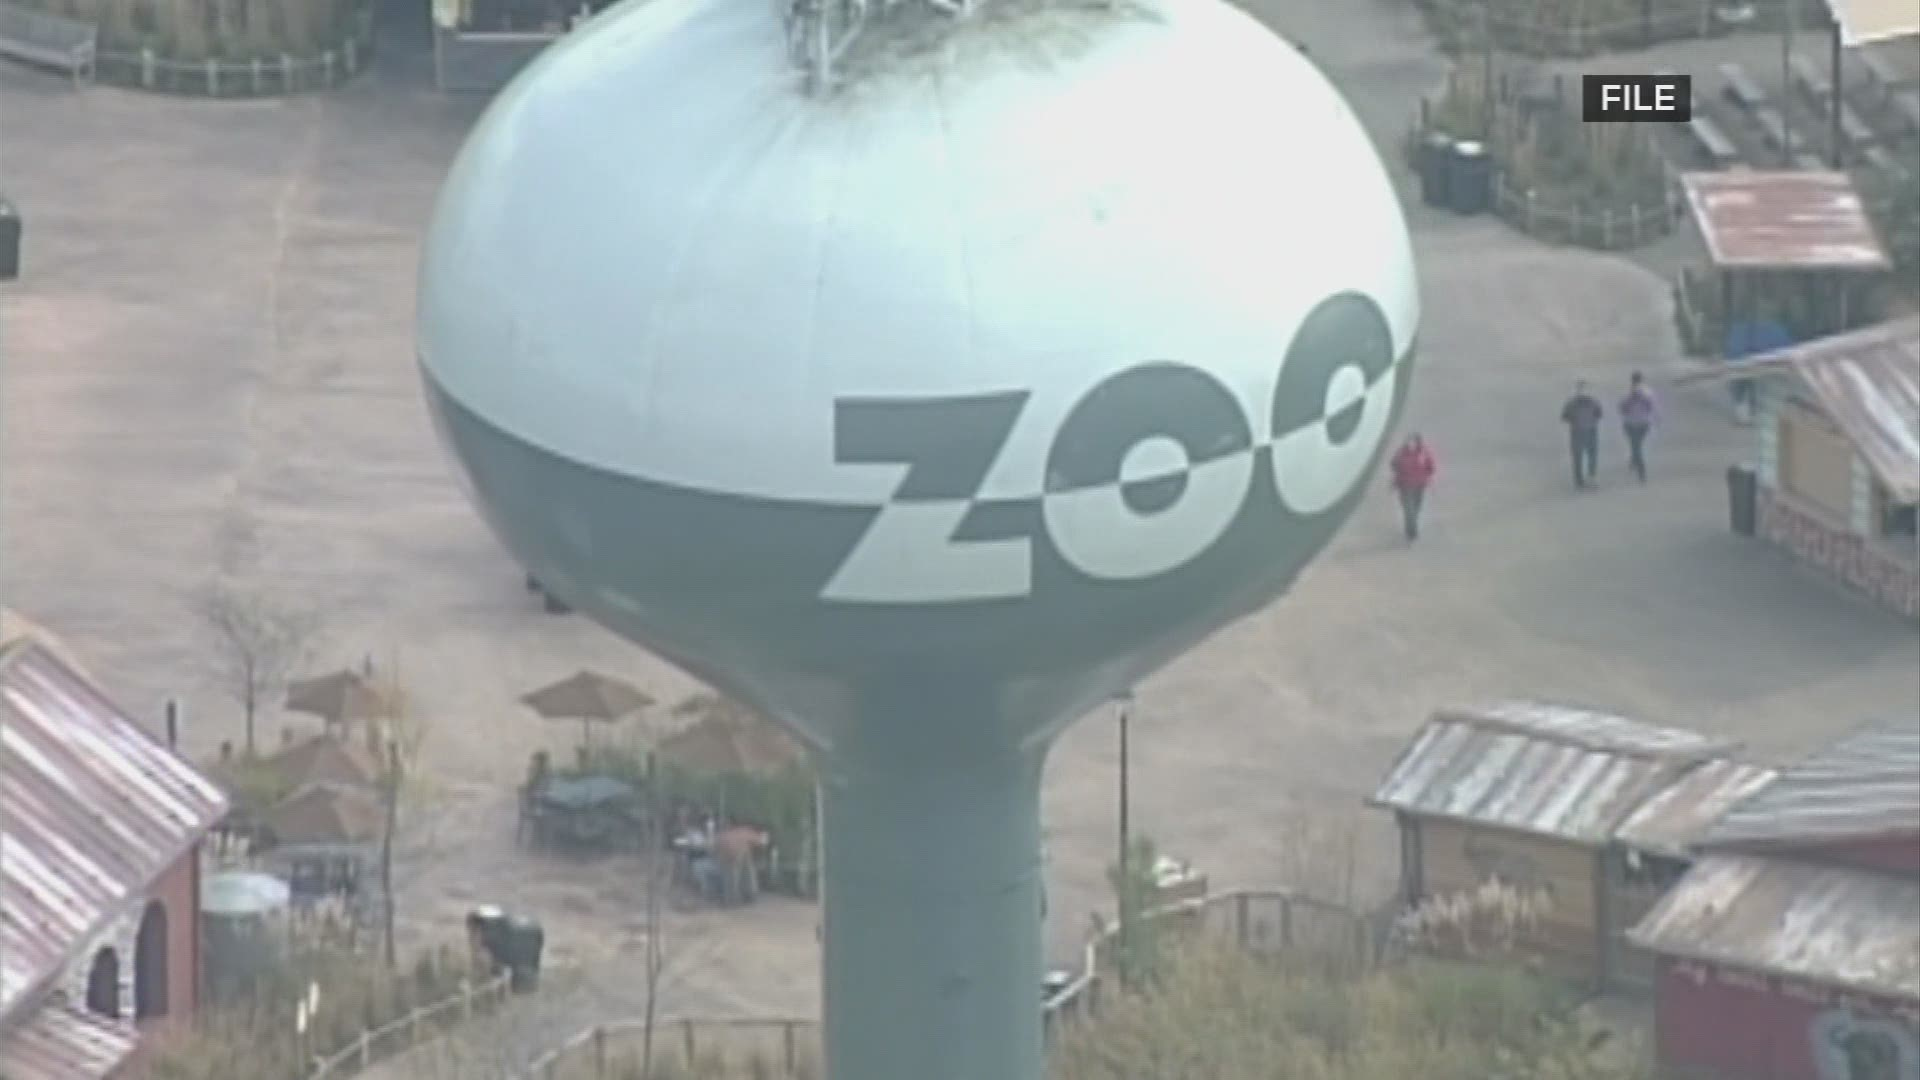 Investigation Columbus Zoo Execs Used Resources For Sporting Events Housing For Relatives 10tv Com